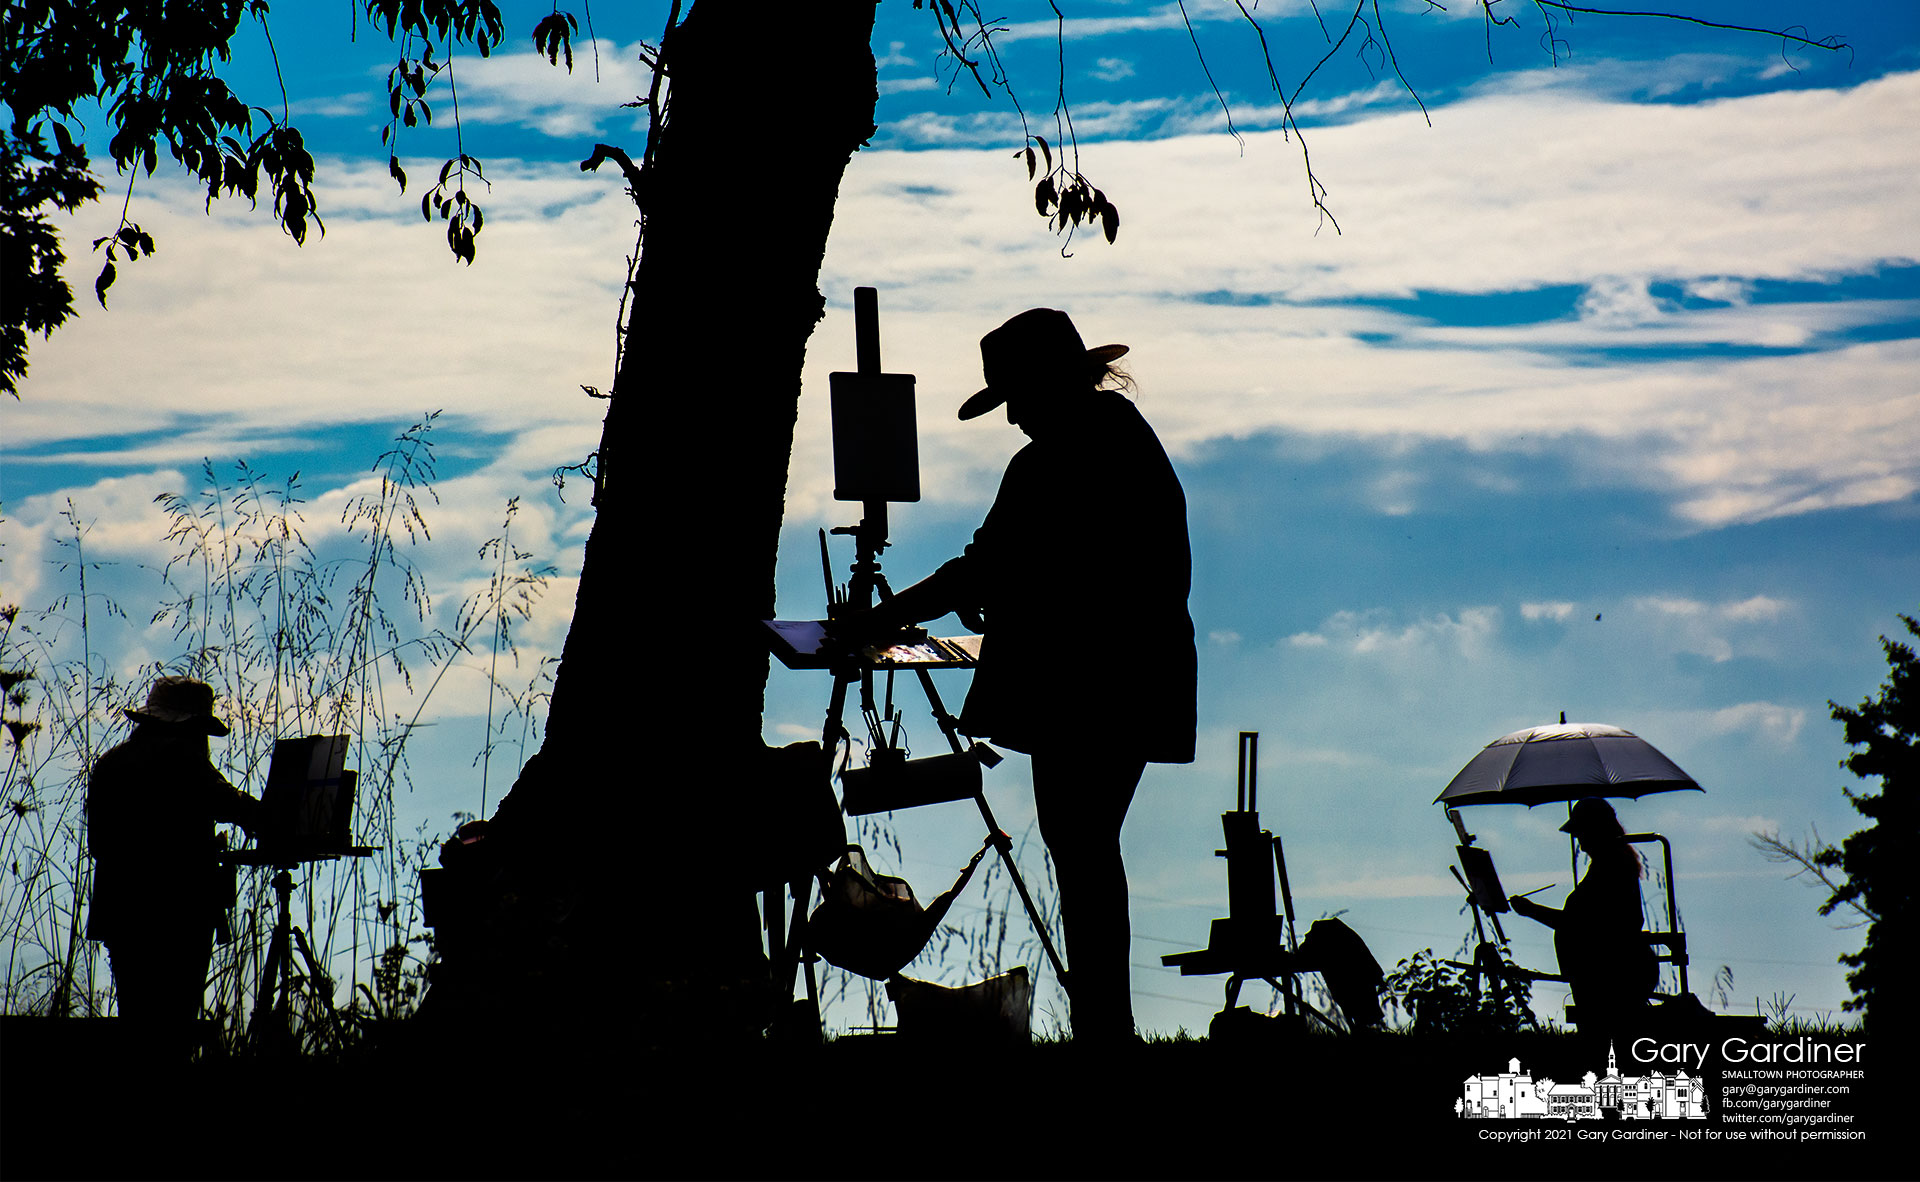 An array of Plein Air artists study their subjects and their results during a painting session at Red Bank Park on Hoover Reservoir. My Final Photo for Oct. 5, 2021.